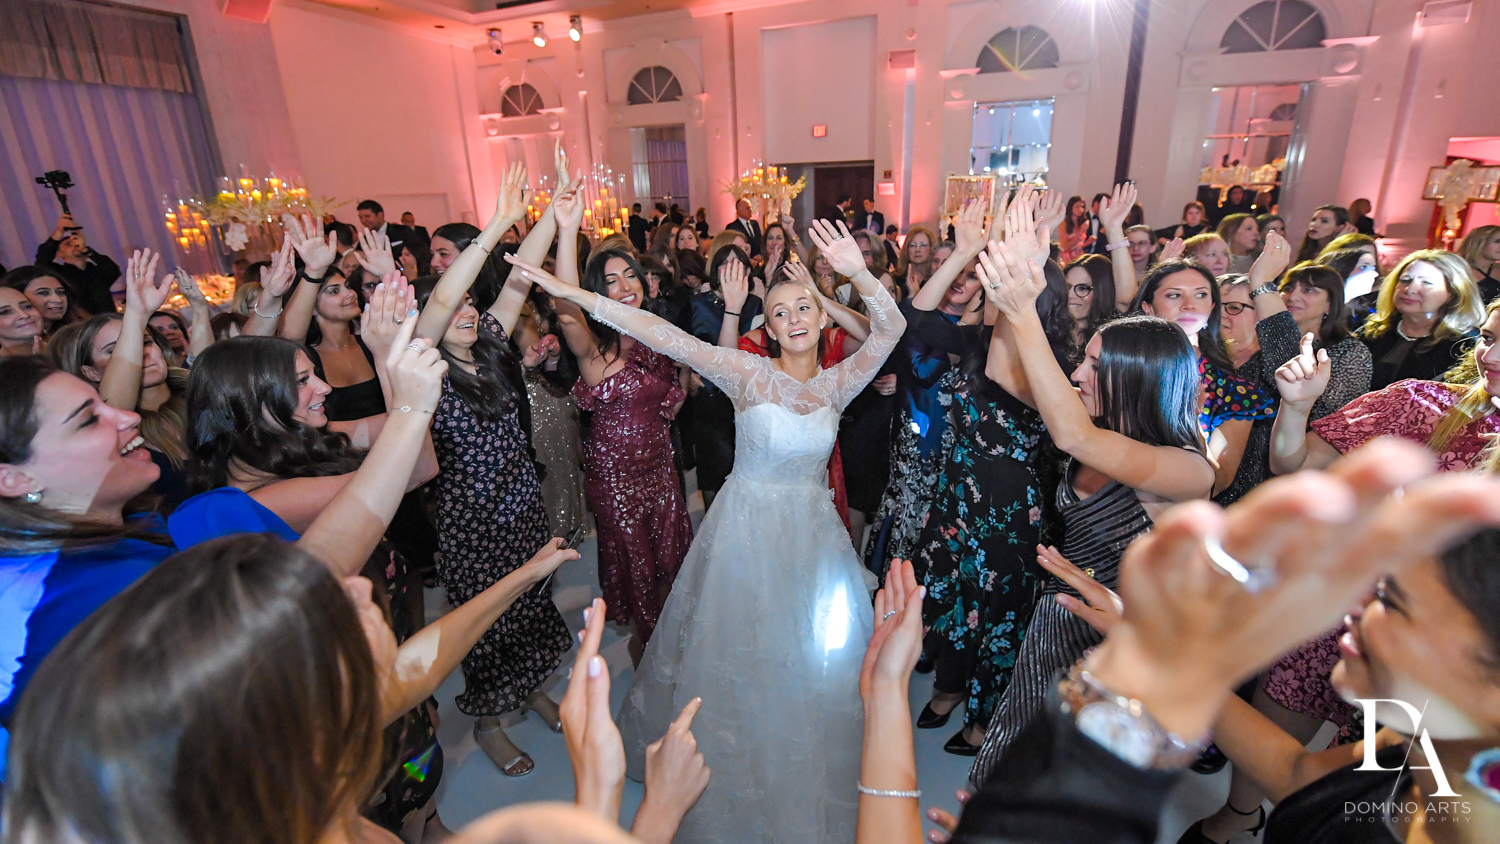 dancing bride at Lavish Flowers & Crystals Wedding at Aventura Turnberry Jewish Center by Domino Arts Photography